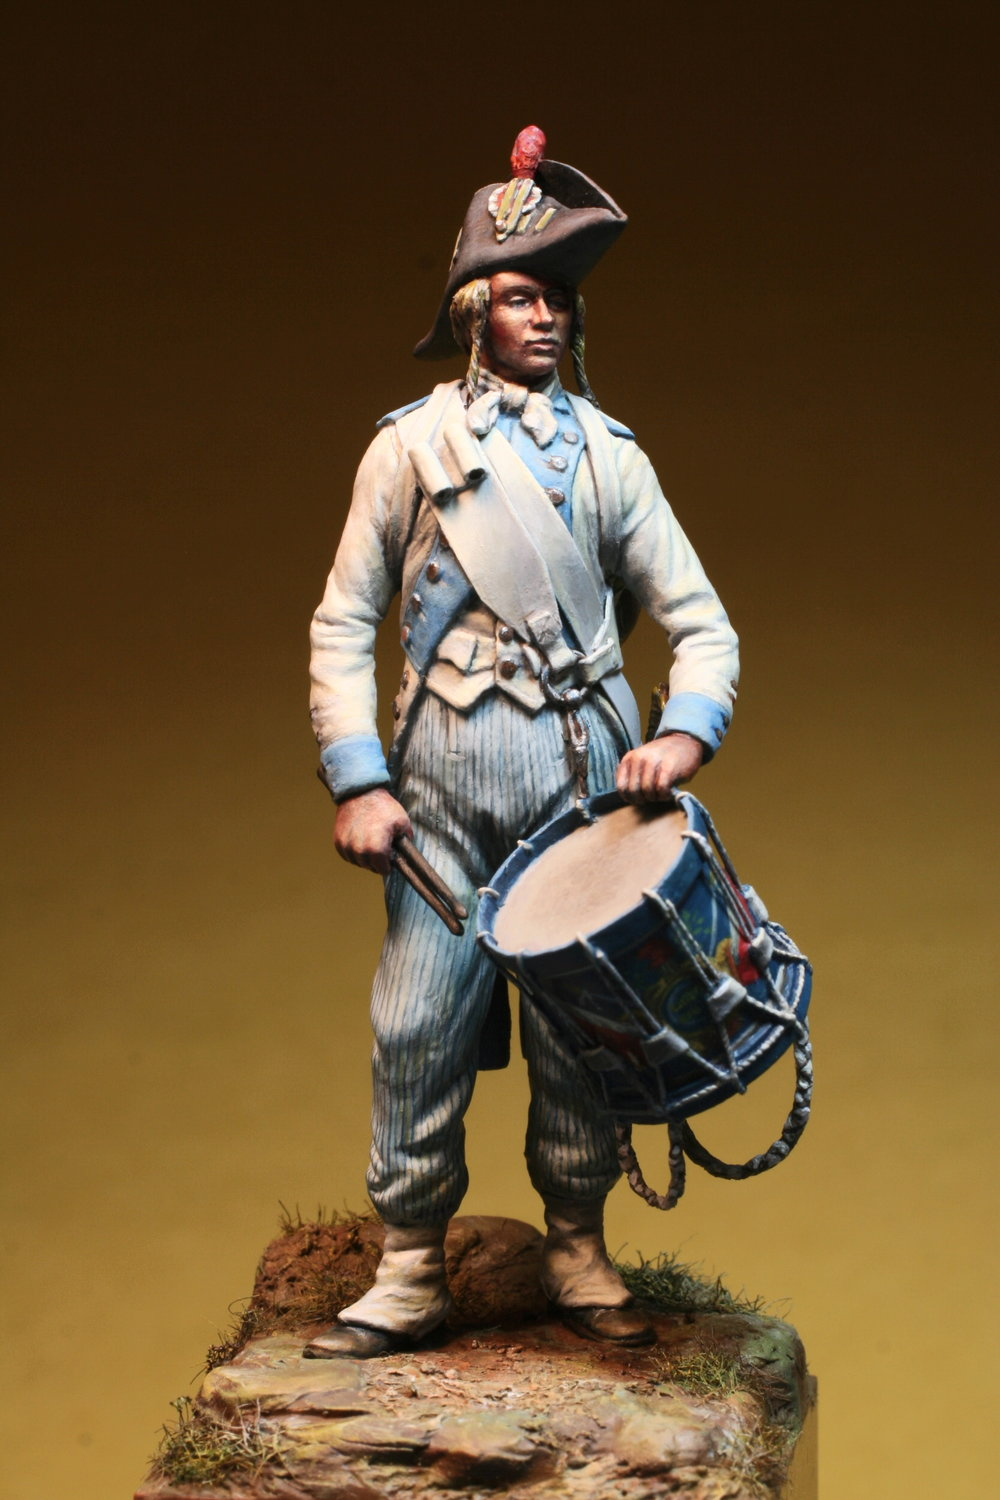 French 2nd Line Infantry Drummer 1793, by Greg DiFranco.